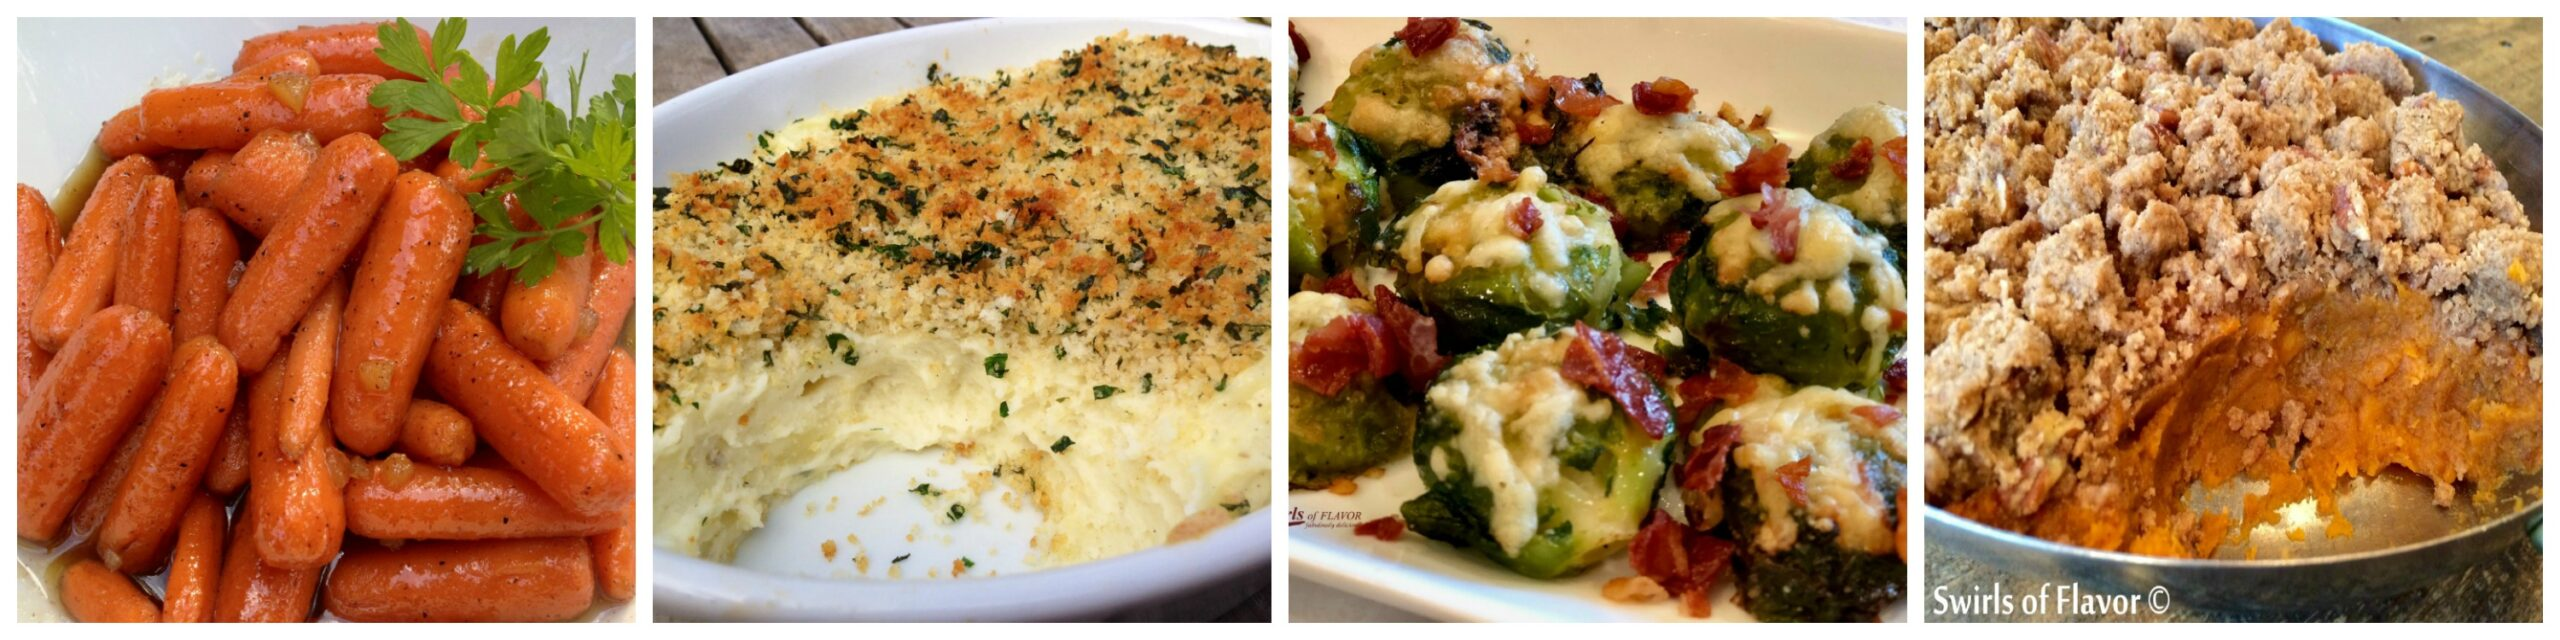 Left to Right: Glazed Carrots; Panko Mashed Potatoes; Smashed Brussels Sprouts; Crumb Topped Sweet Potatoes